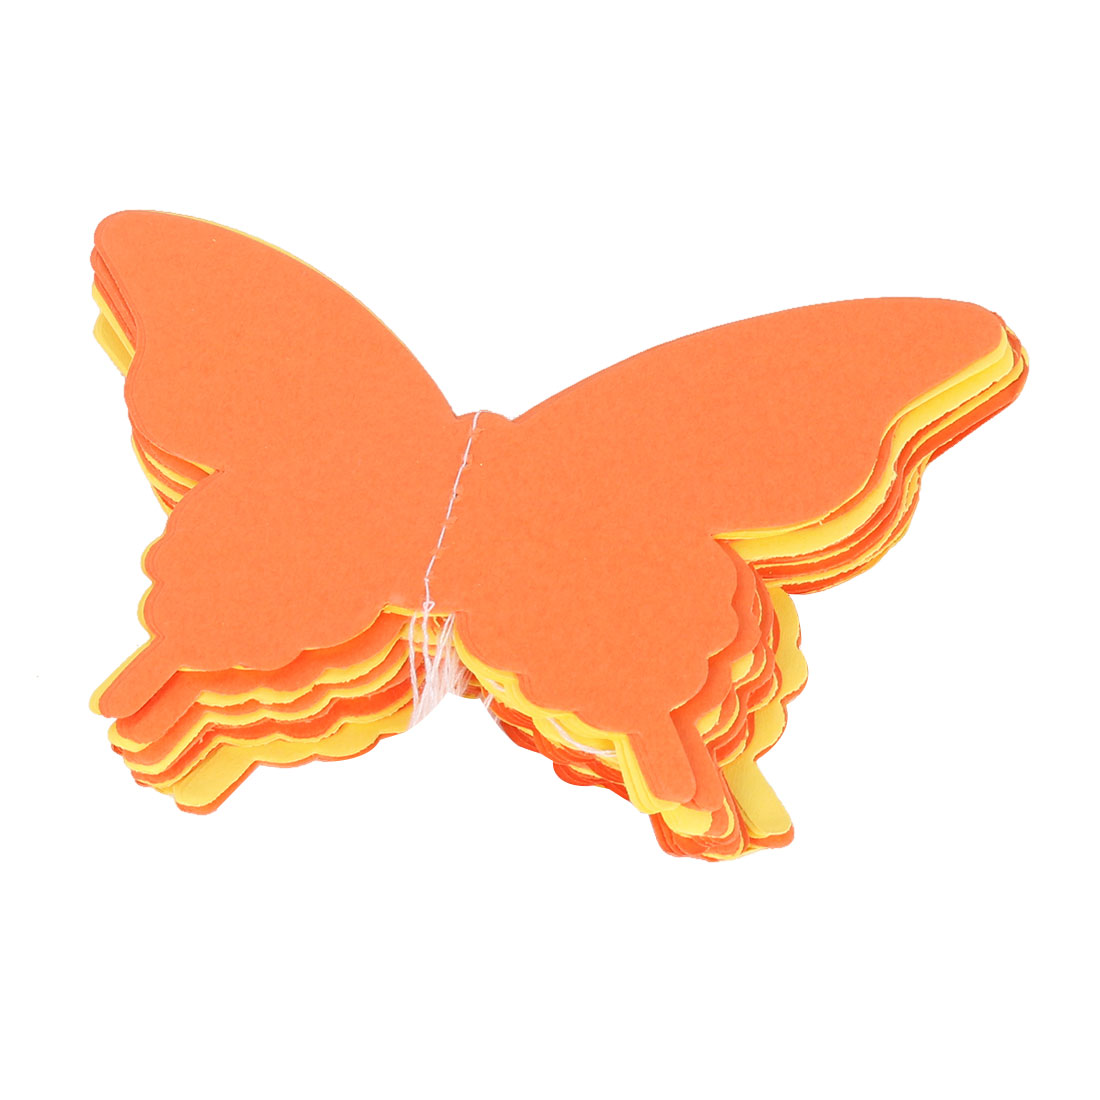 Party Paper Butterfly Shaped Crafting Hanging Garland Ornament Orange Yellow